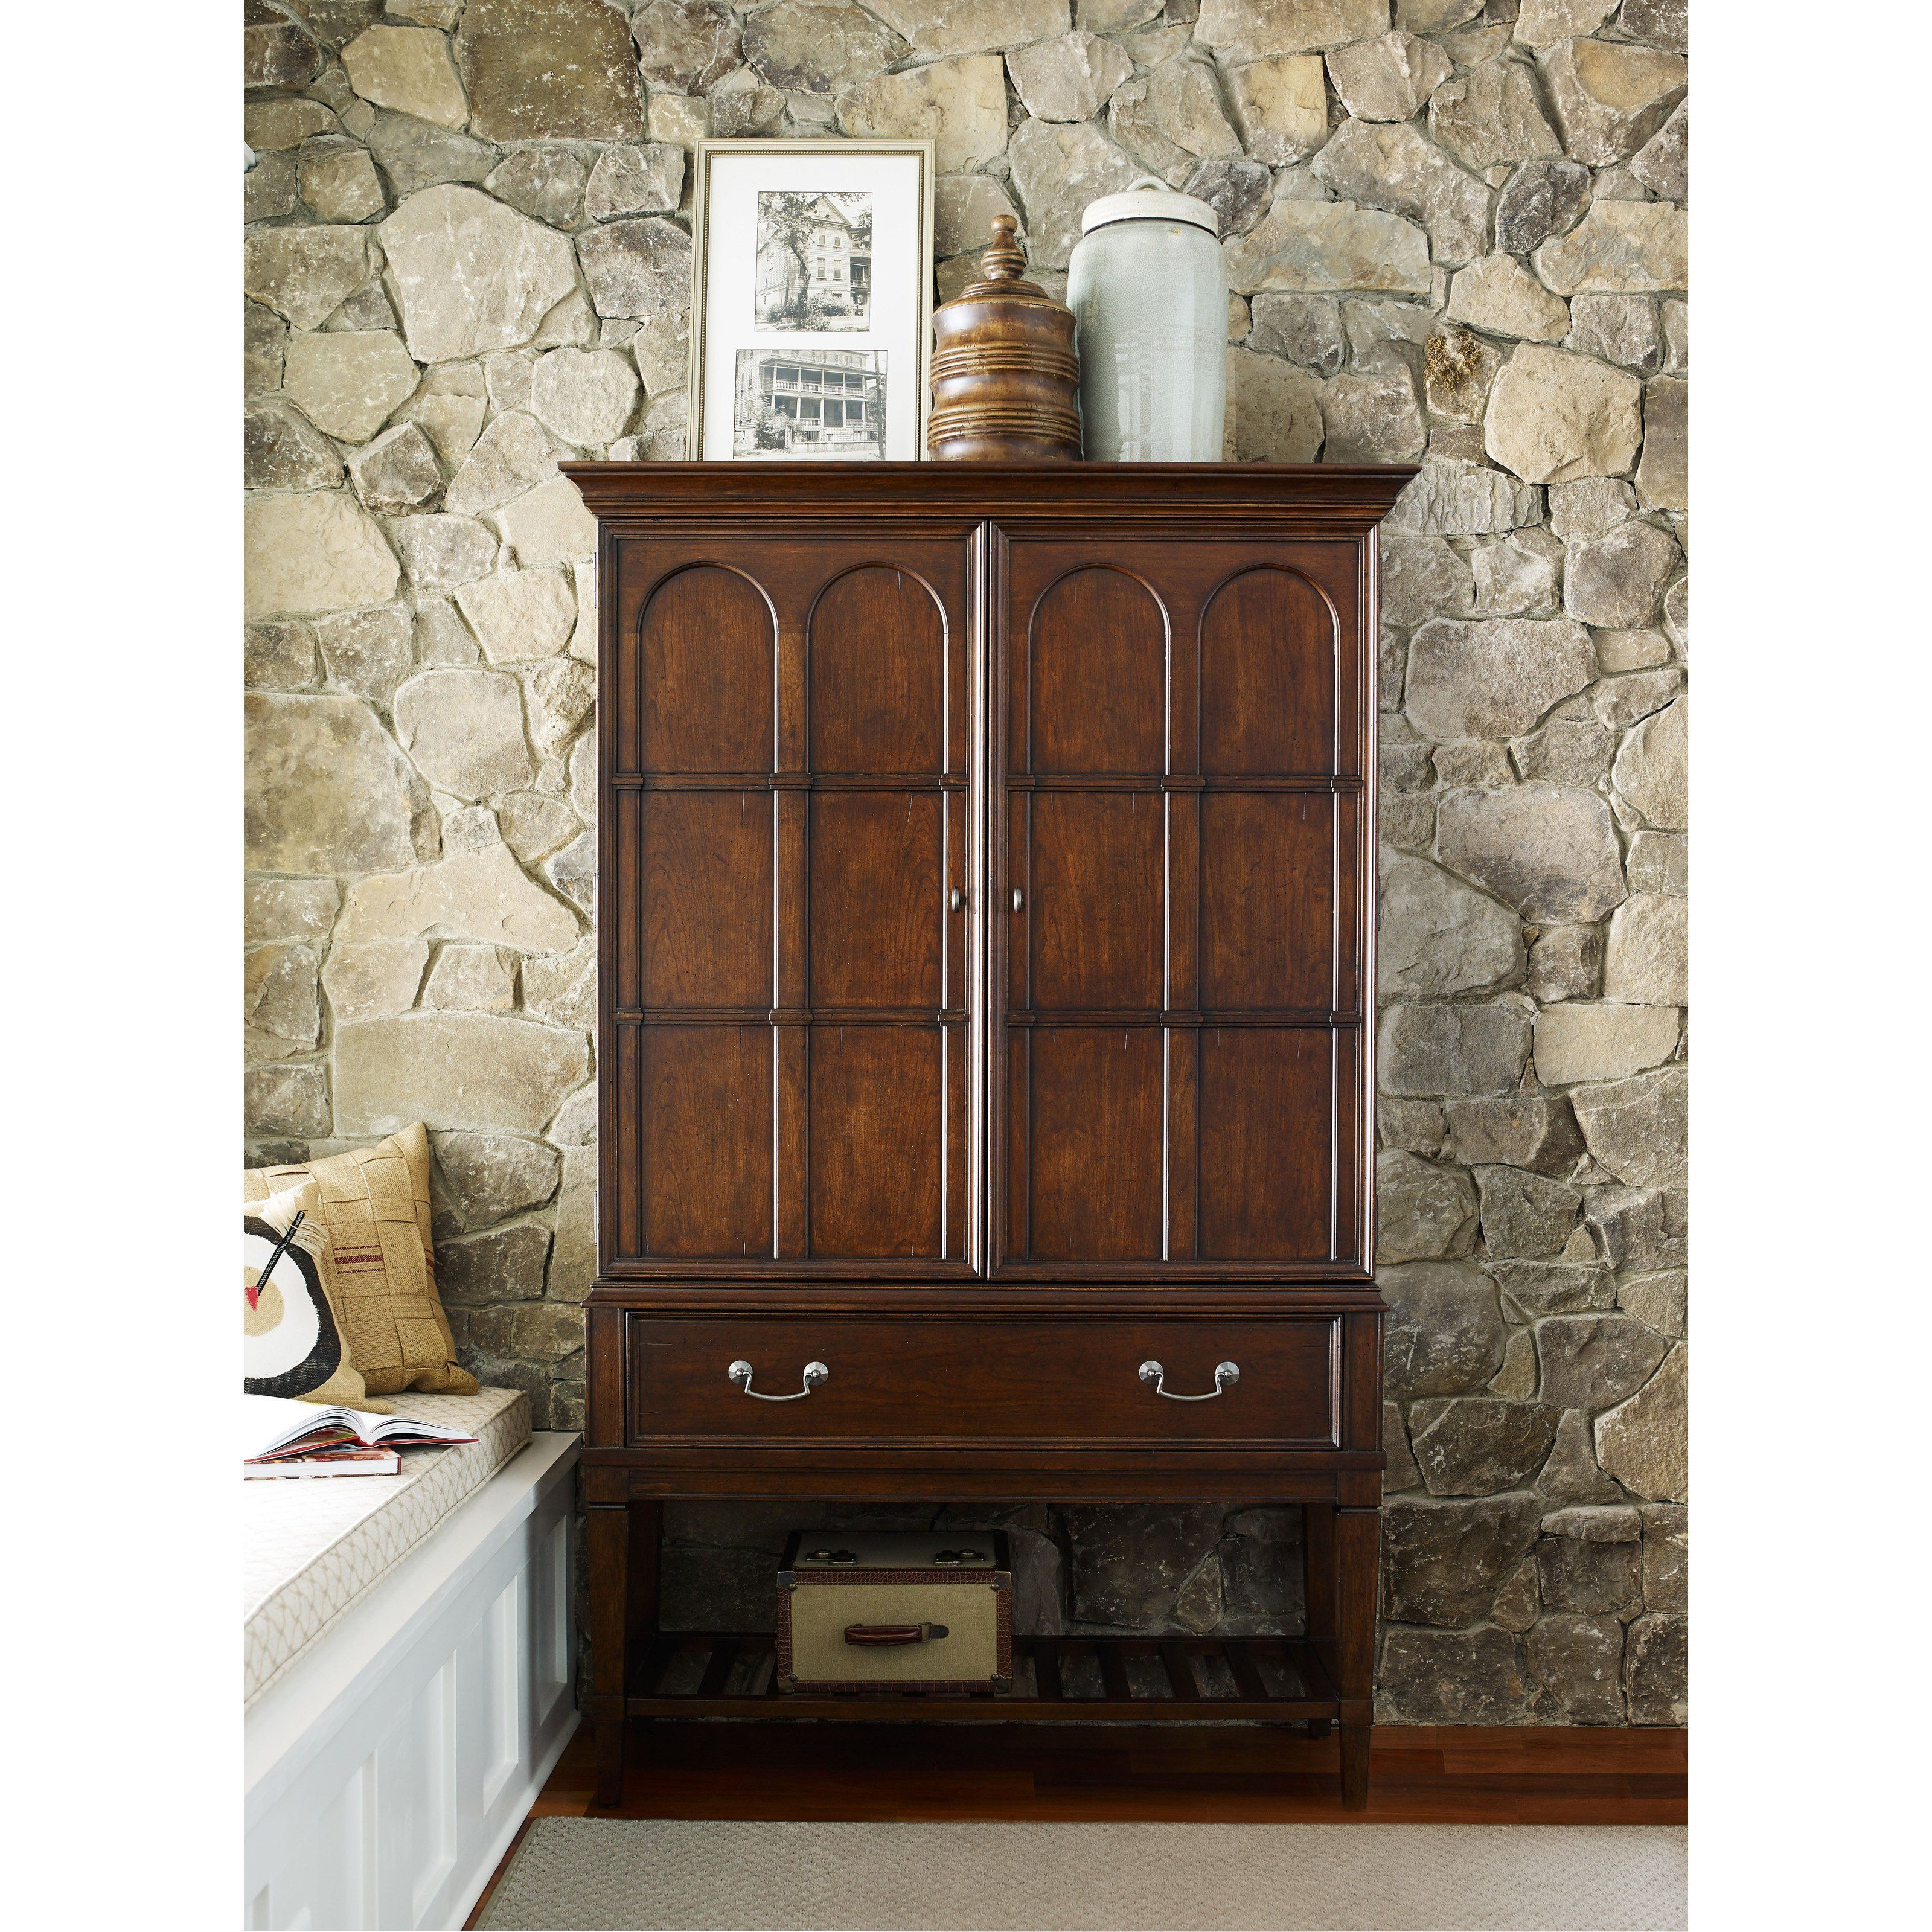 Rachael Ray Upstatelegacy Classic Bar Cabinet – 6040 155 Intended For Arminta Wood Sideboards (View 12 of 20)